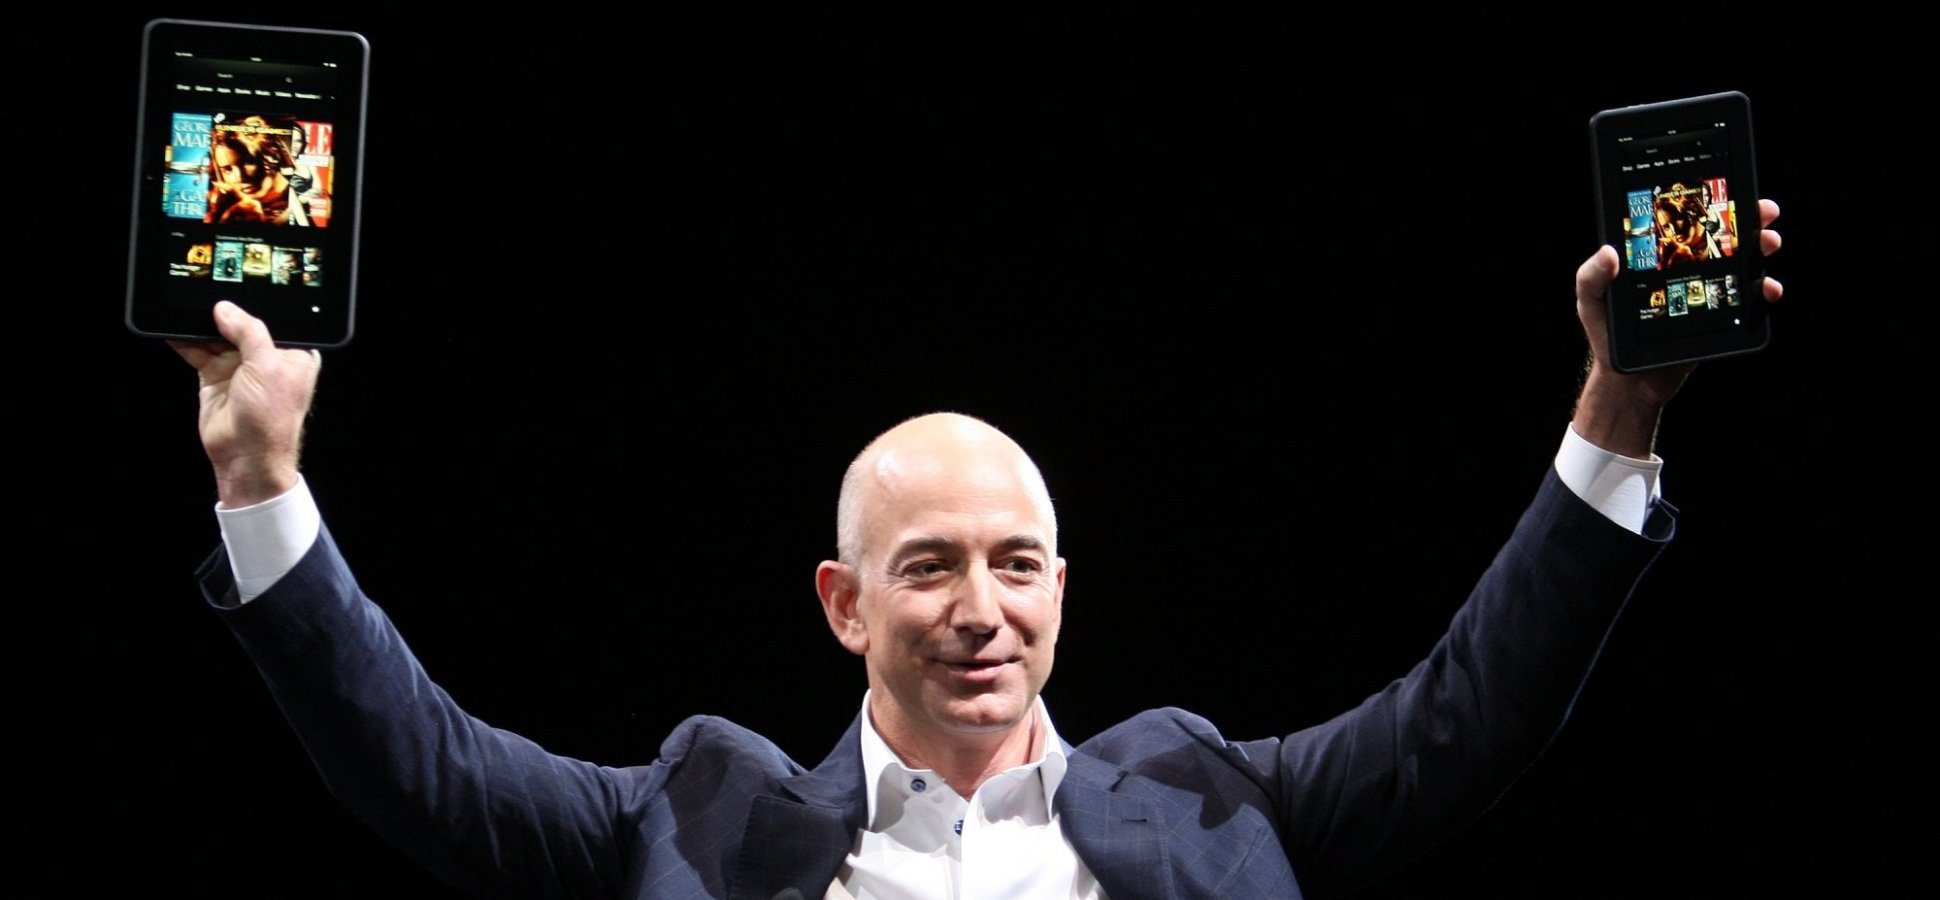 In Just 2 Words, Jeff Bezos Sums Up What Separates Winners From Dreamers